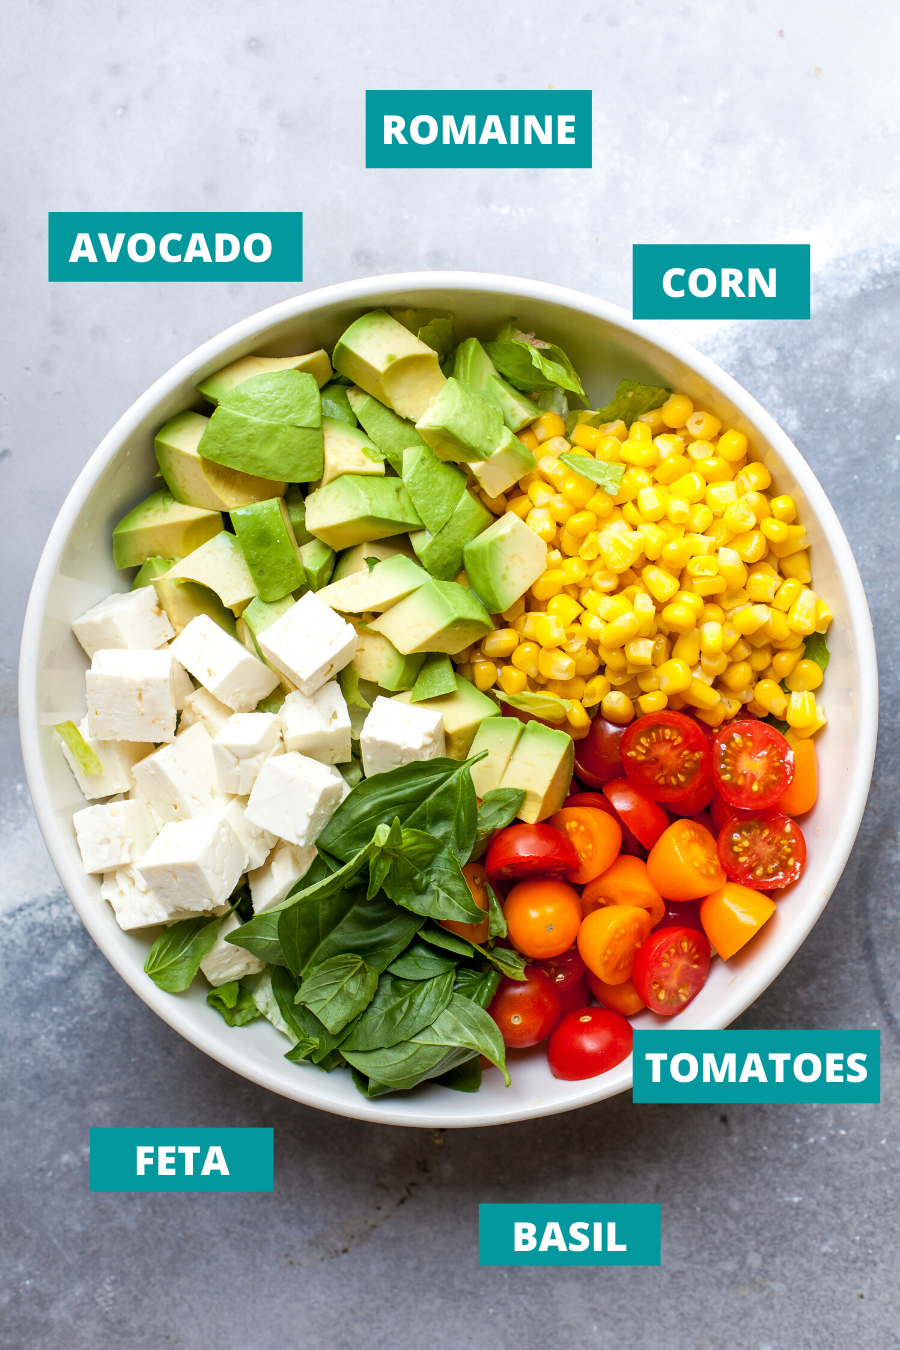 Tomato, Avocado, and Feta Salad ingredients